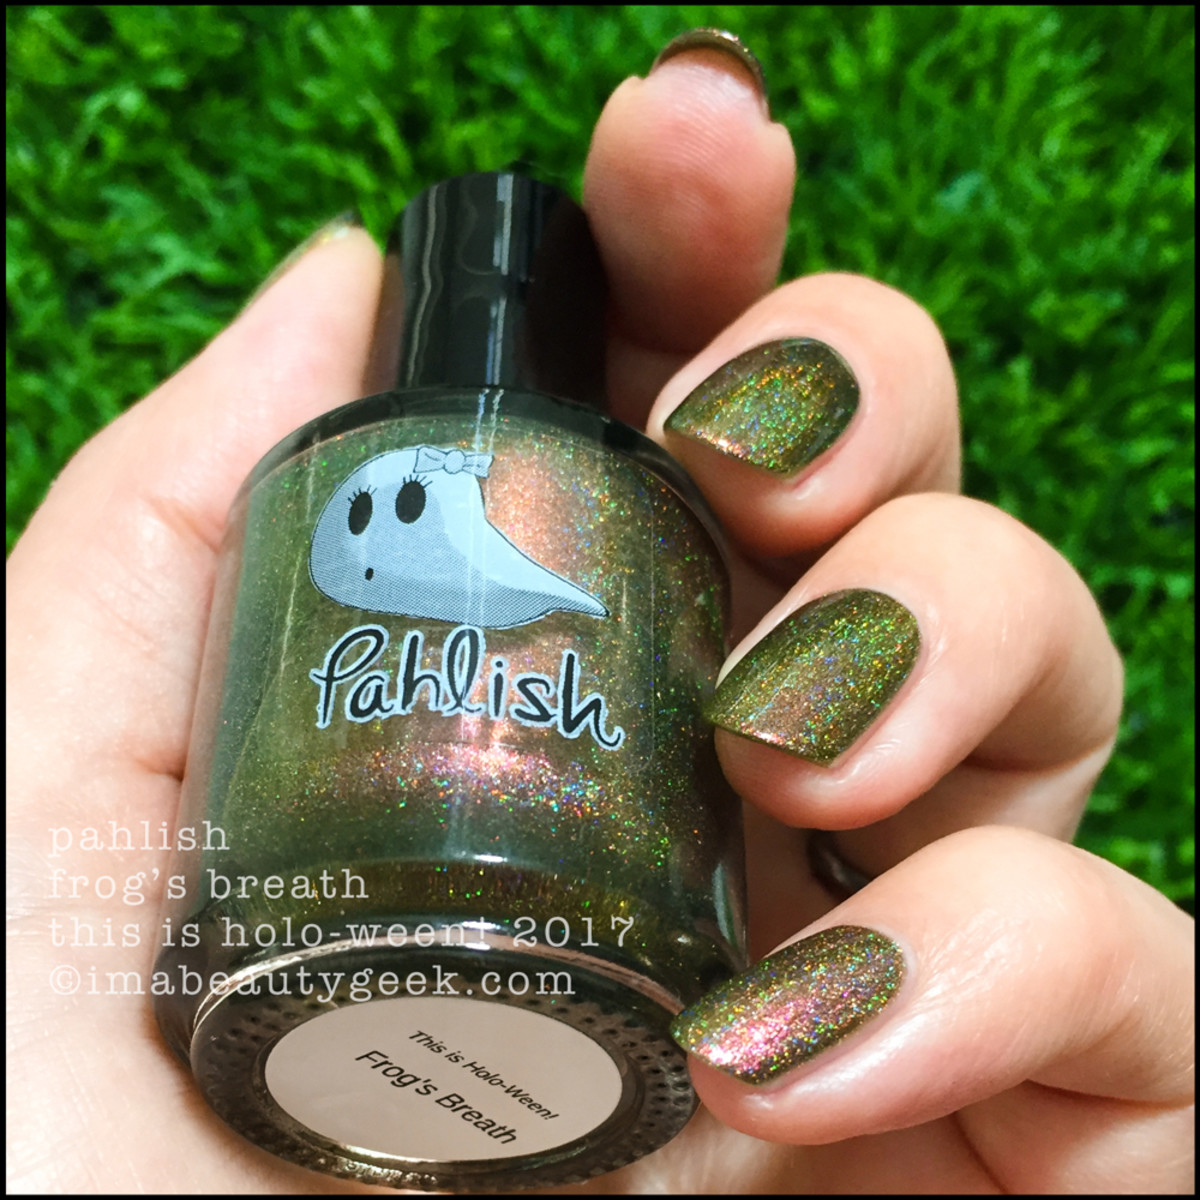 Pahlish Frog's Breath 2 - This is Holo-ween! 2017